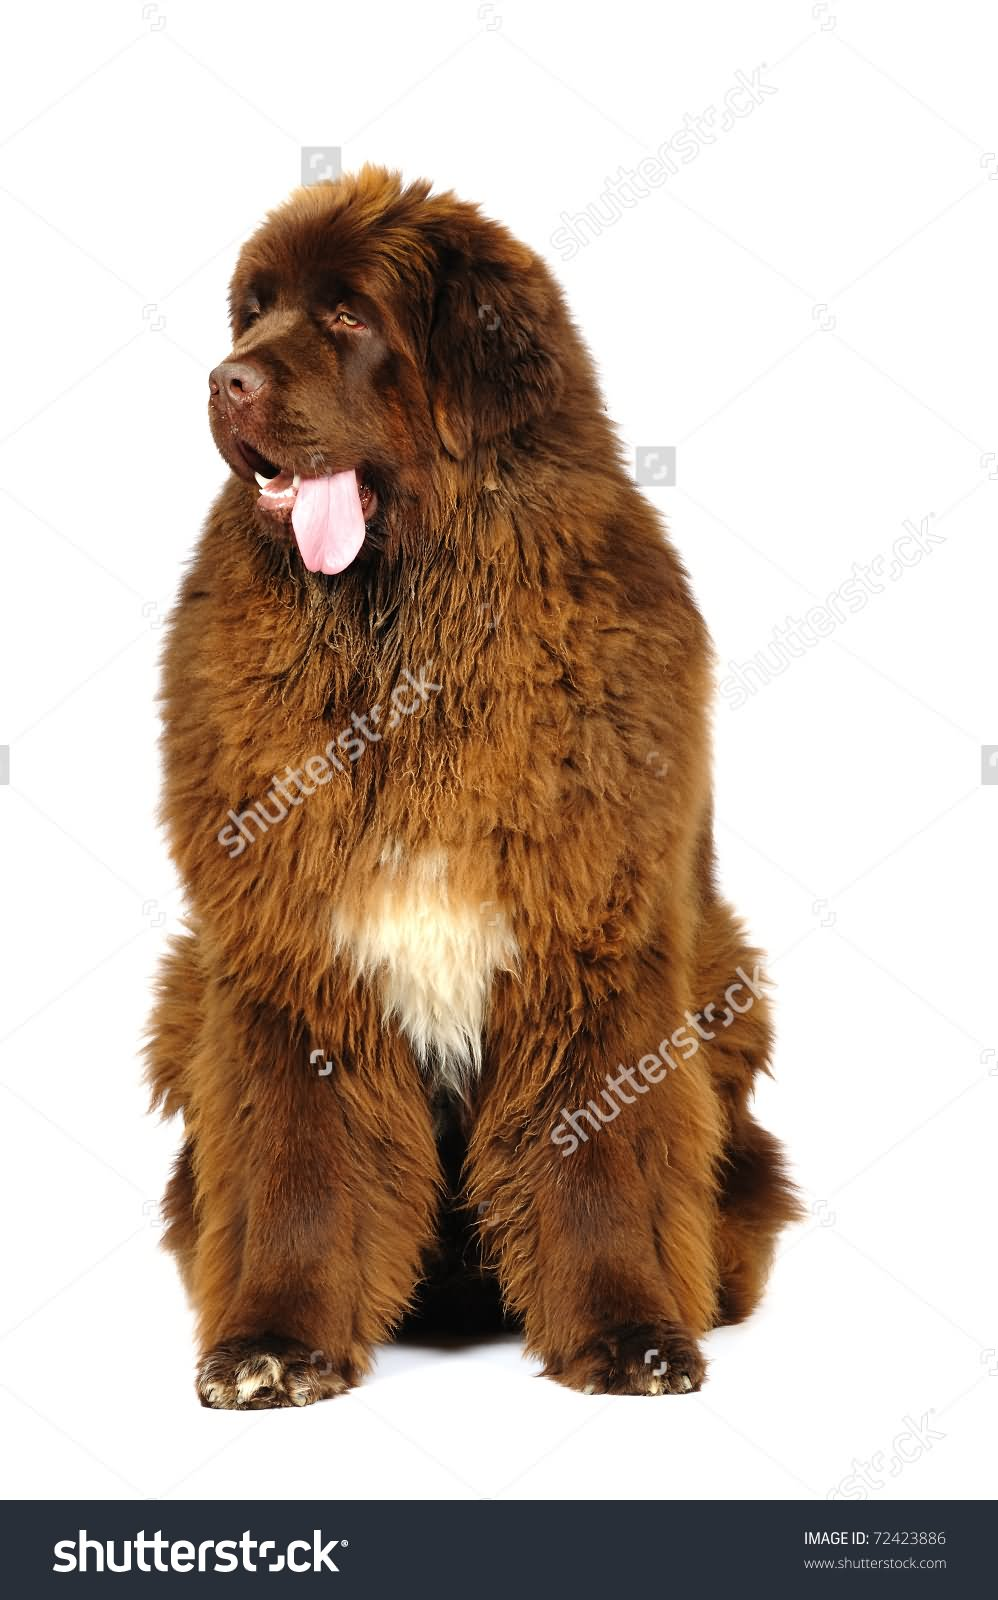 35 very beautiful newfoundland dog pictures - Beautiful Brown Newfoundland Dog Sitting